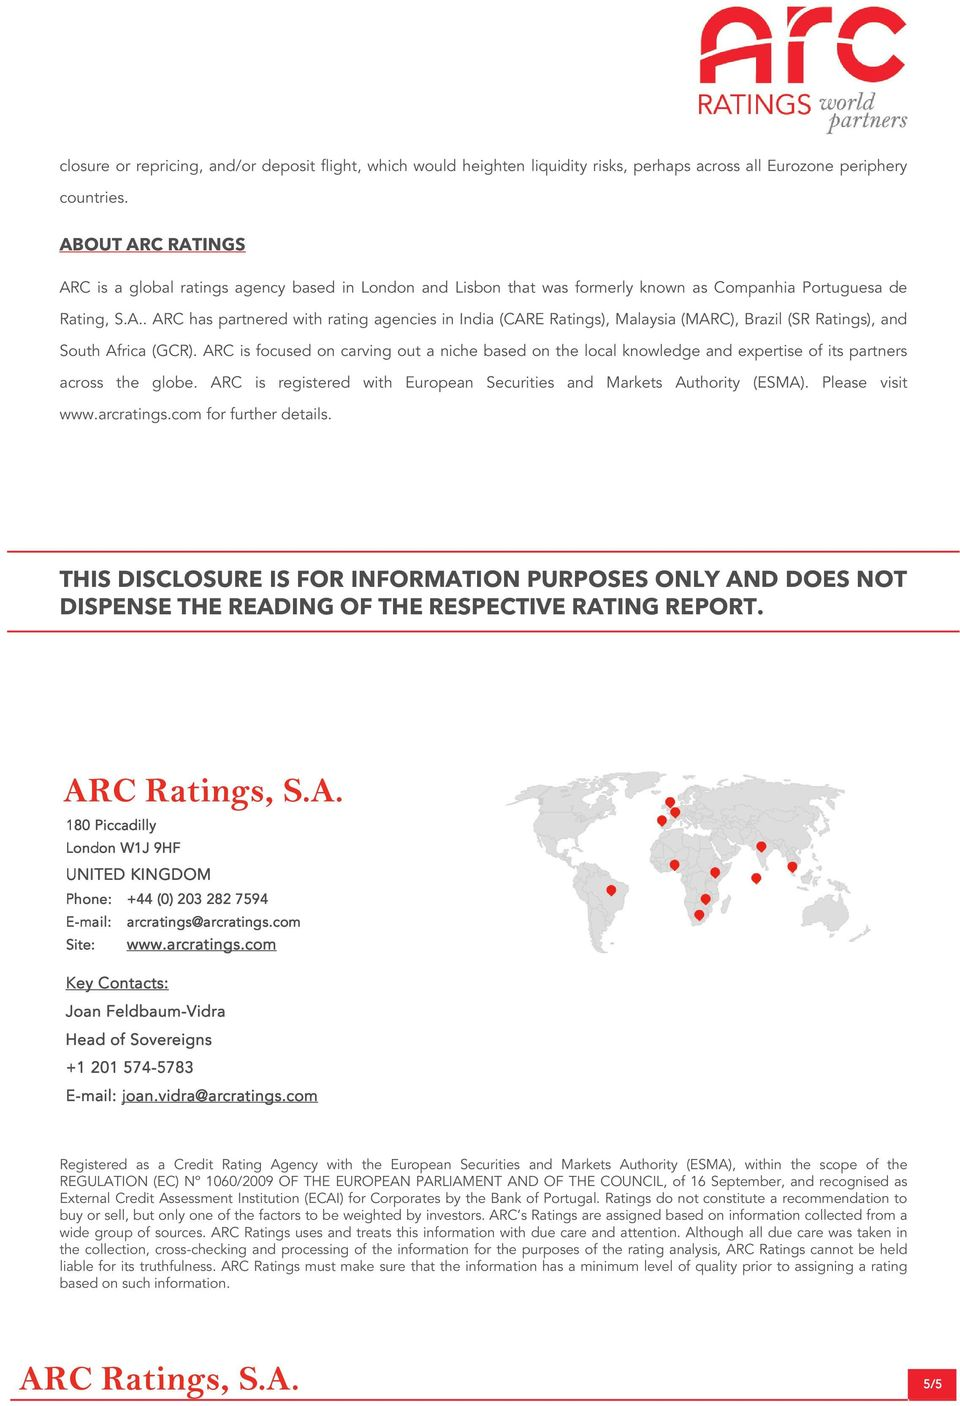 ARC is focused on carving out a niche based on the local knowledge and expertise of its partners across the globe. ARC is registered with European Securities and Markets Authority (ESMA).